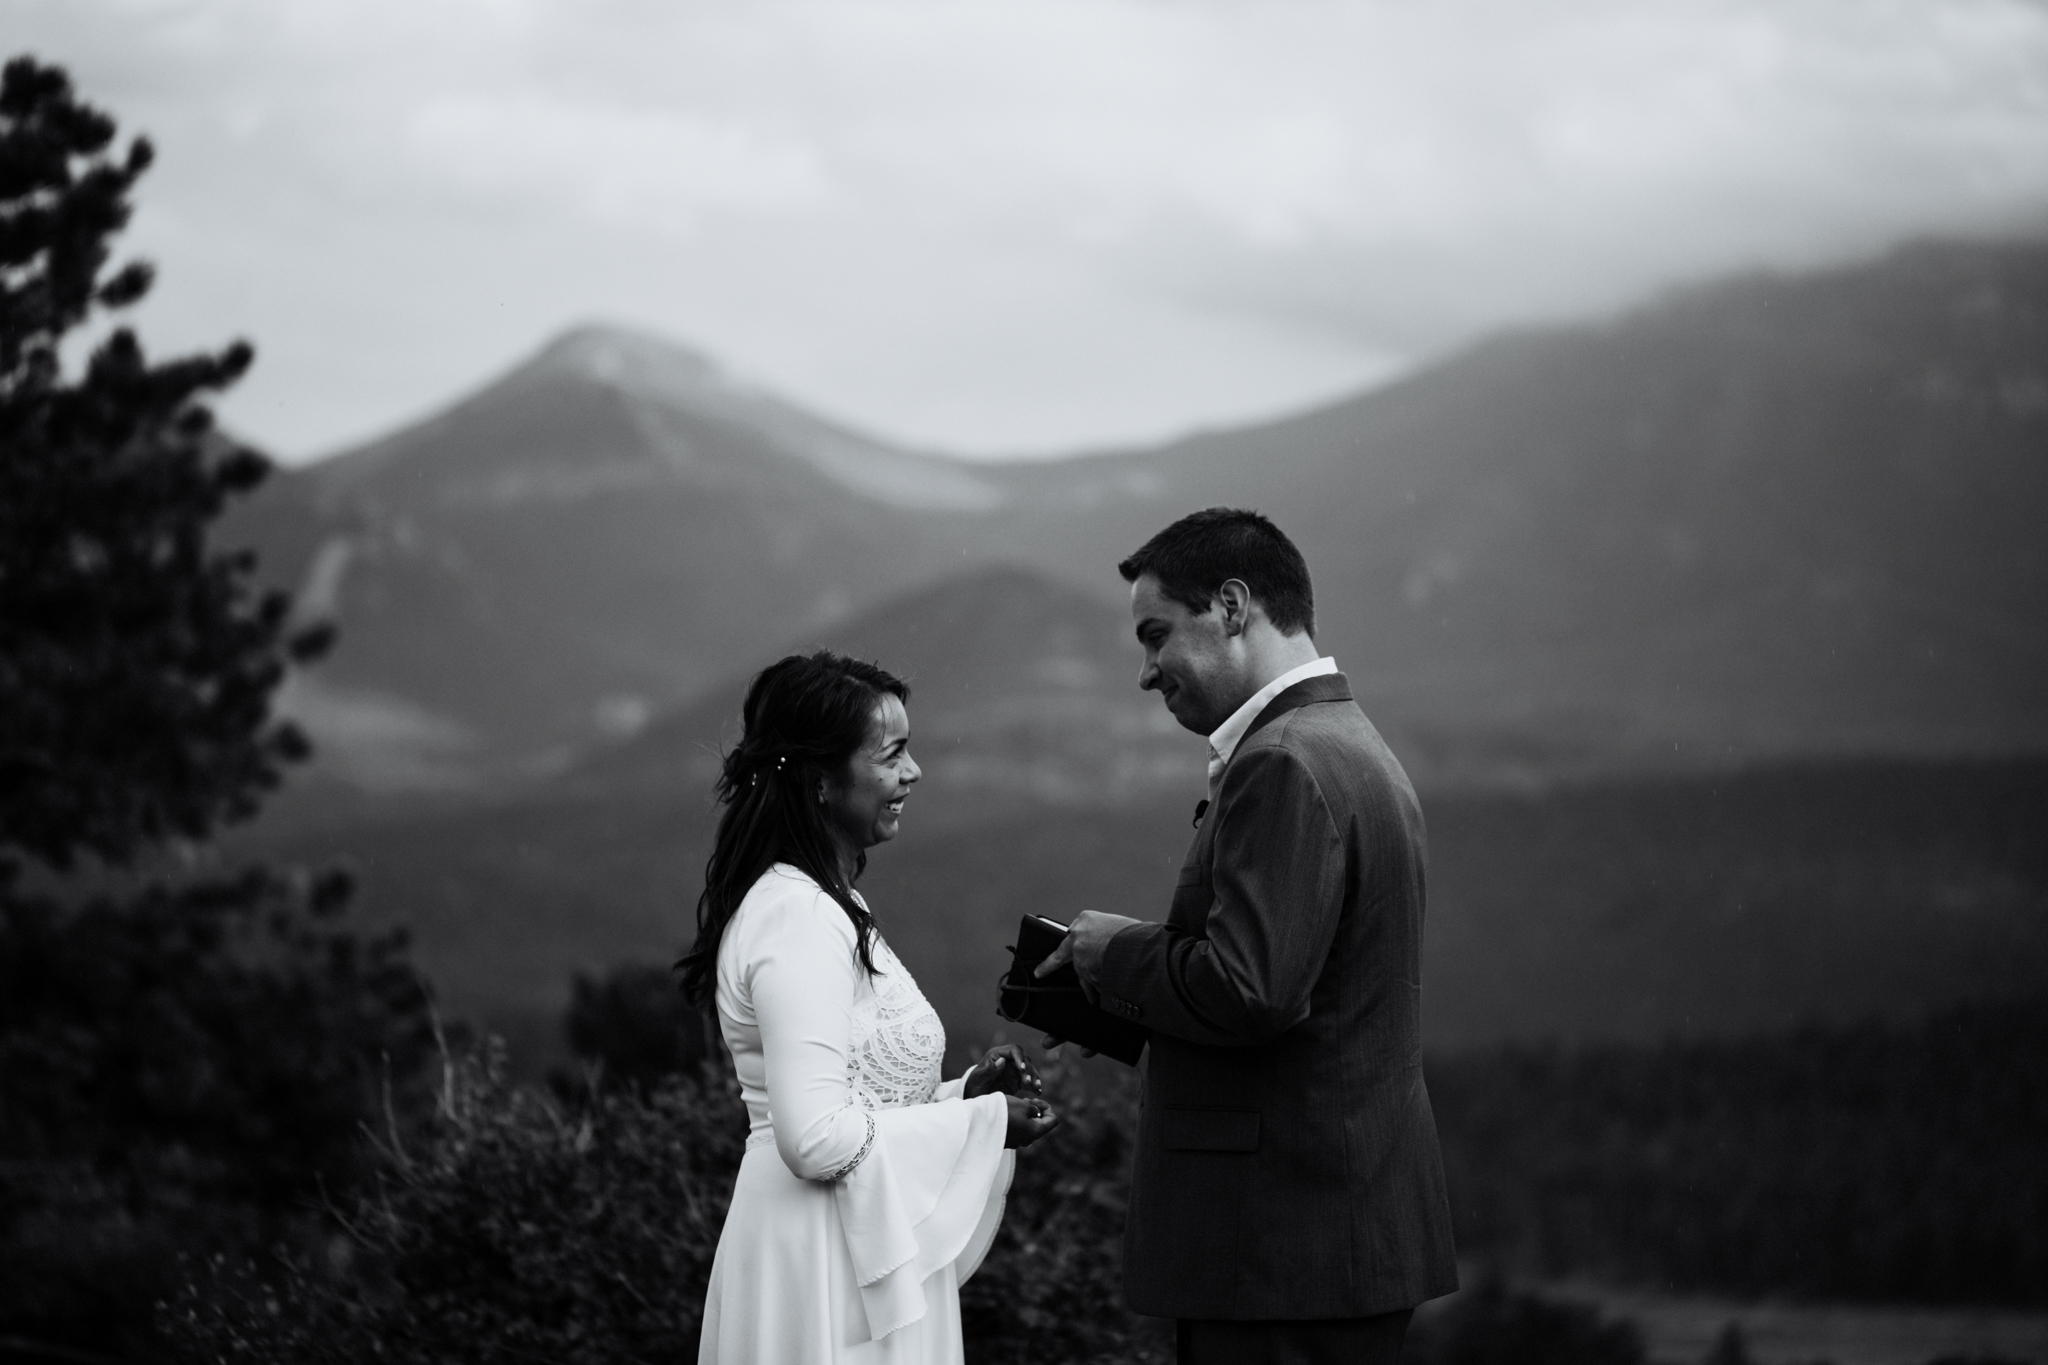 Destination Elopement Photographer - Vow of the Wild - Rocky Mountain National Park - Hiking Elopement - 3M Curve Ceremony